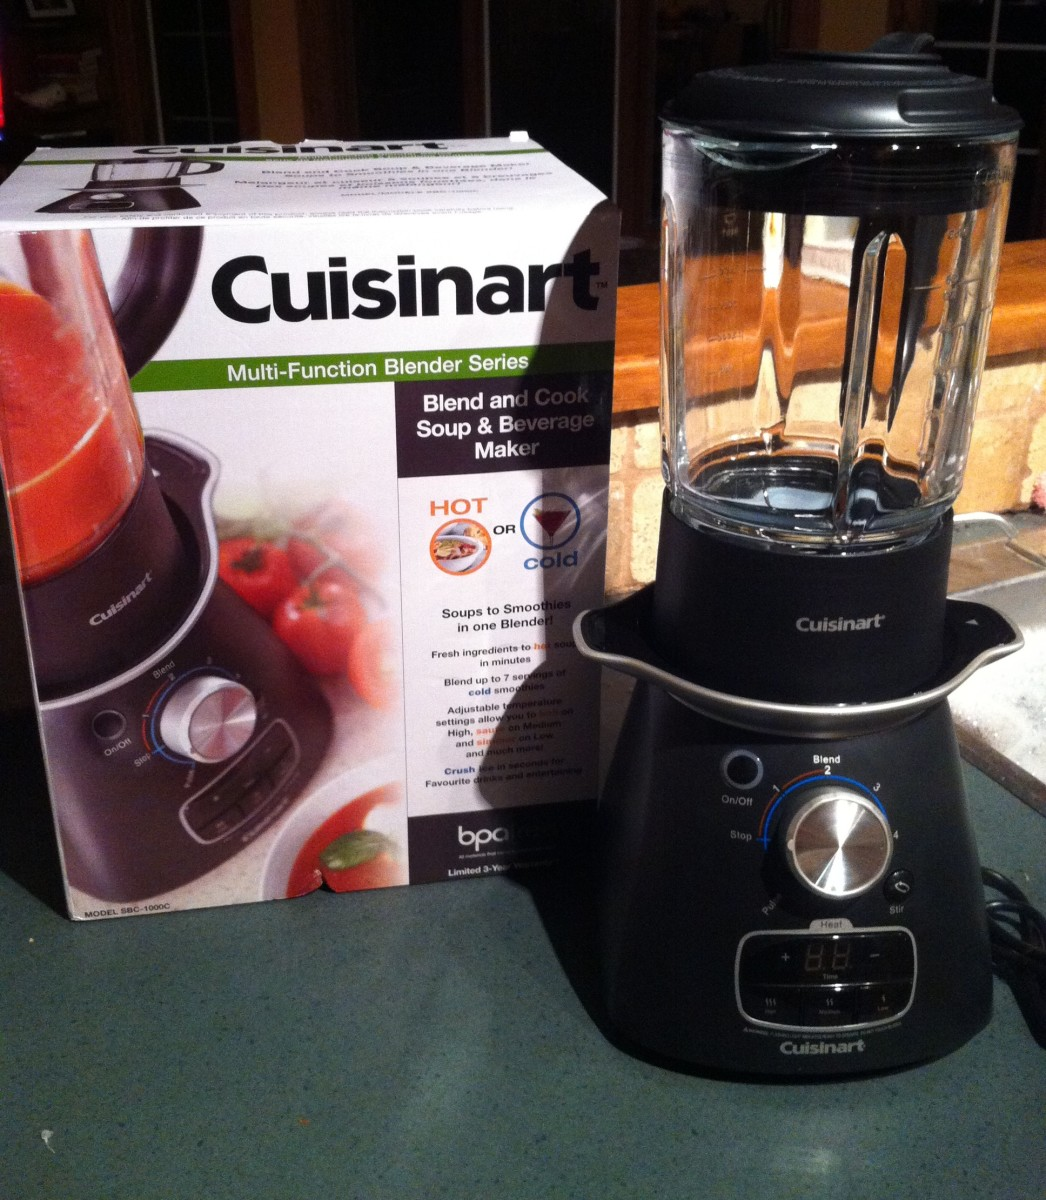 The Cuisinart Soup Maker is a welcome addition to my kitchen.